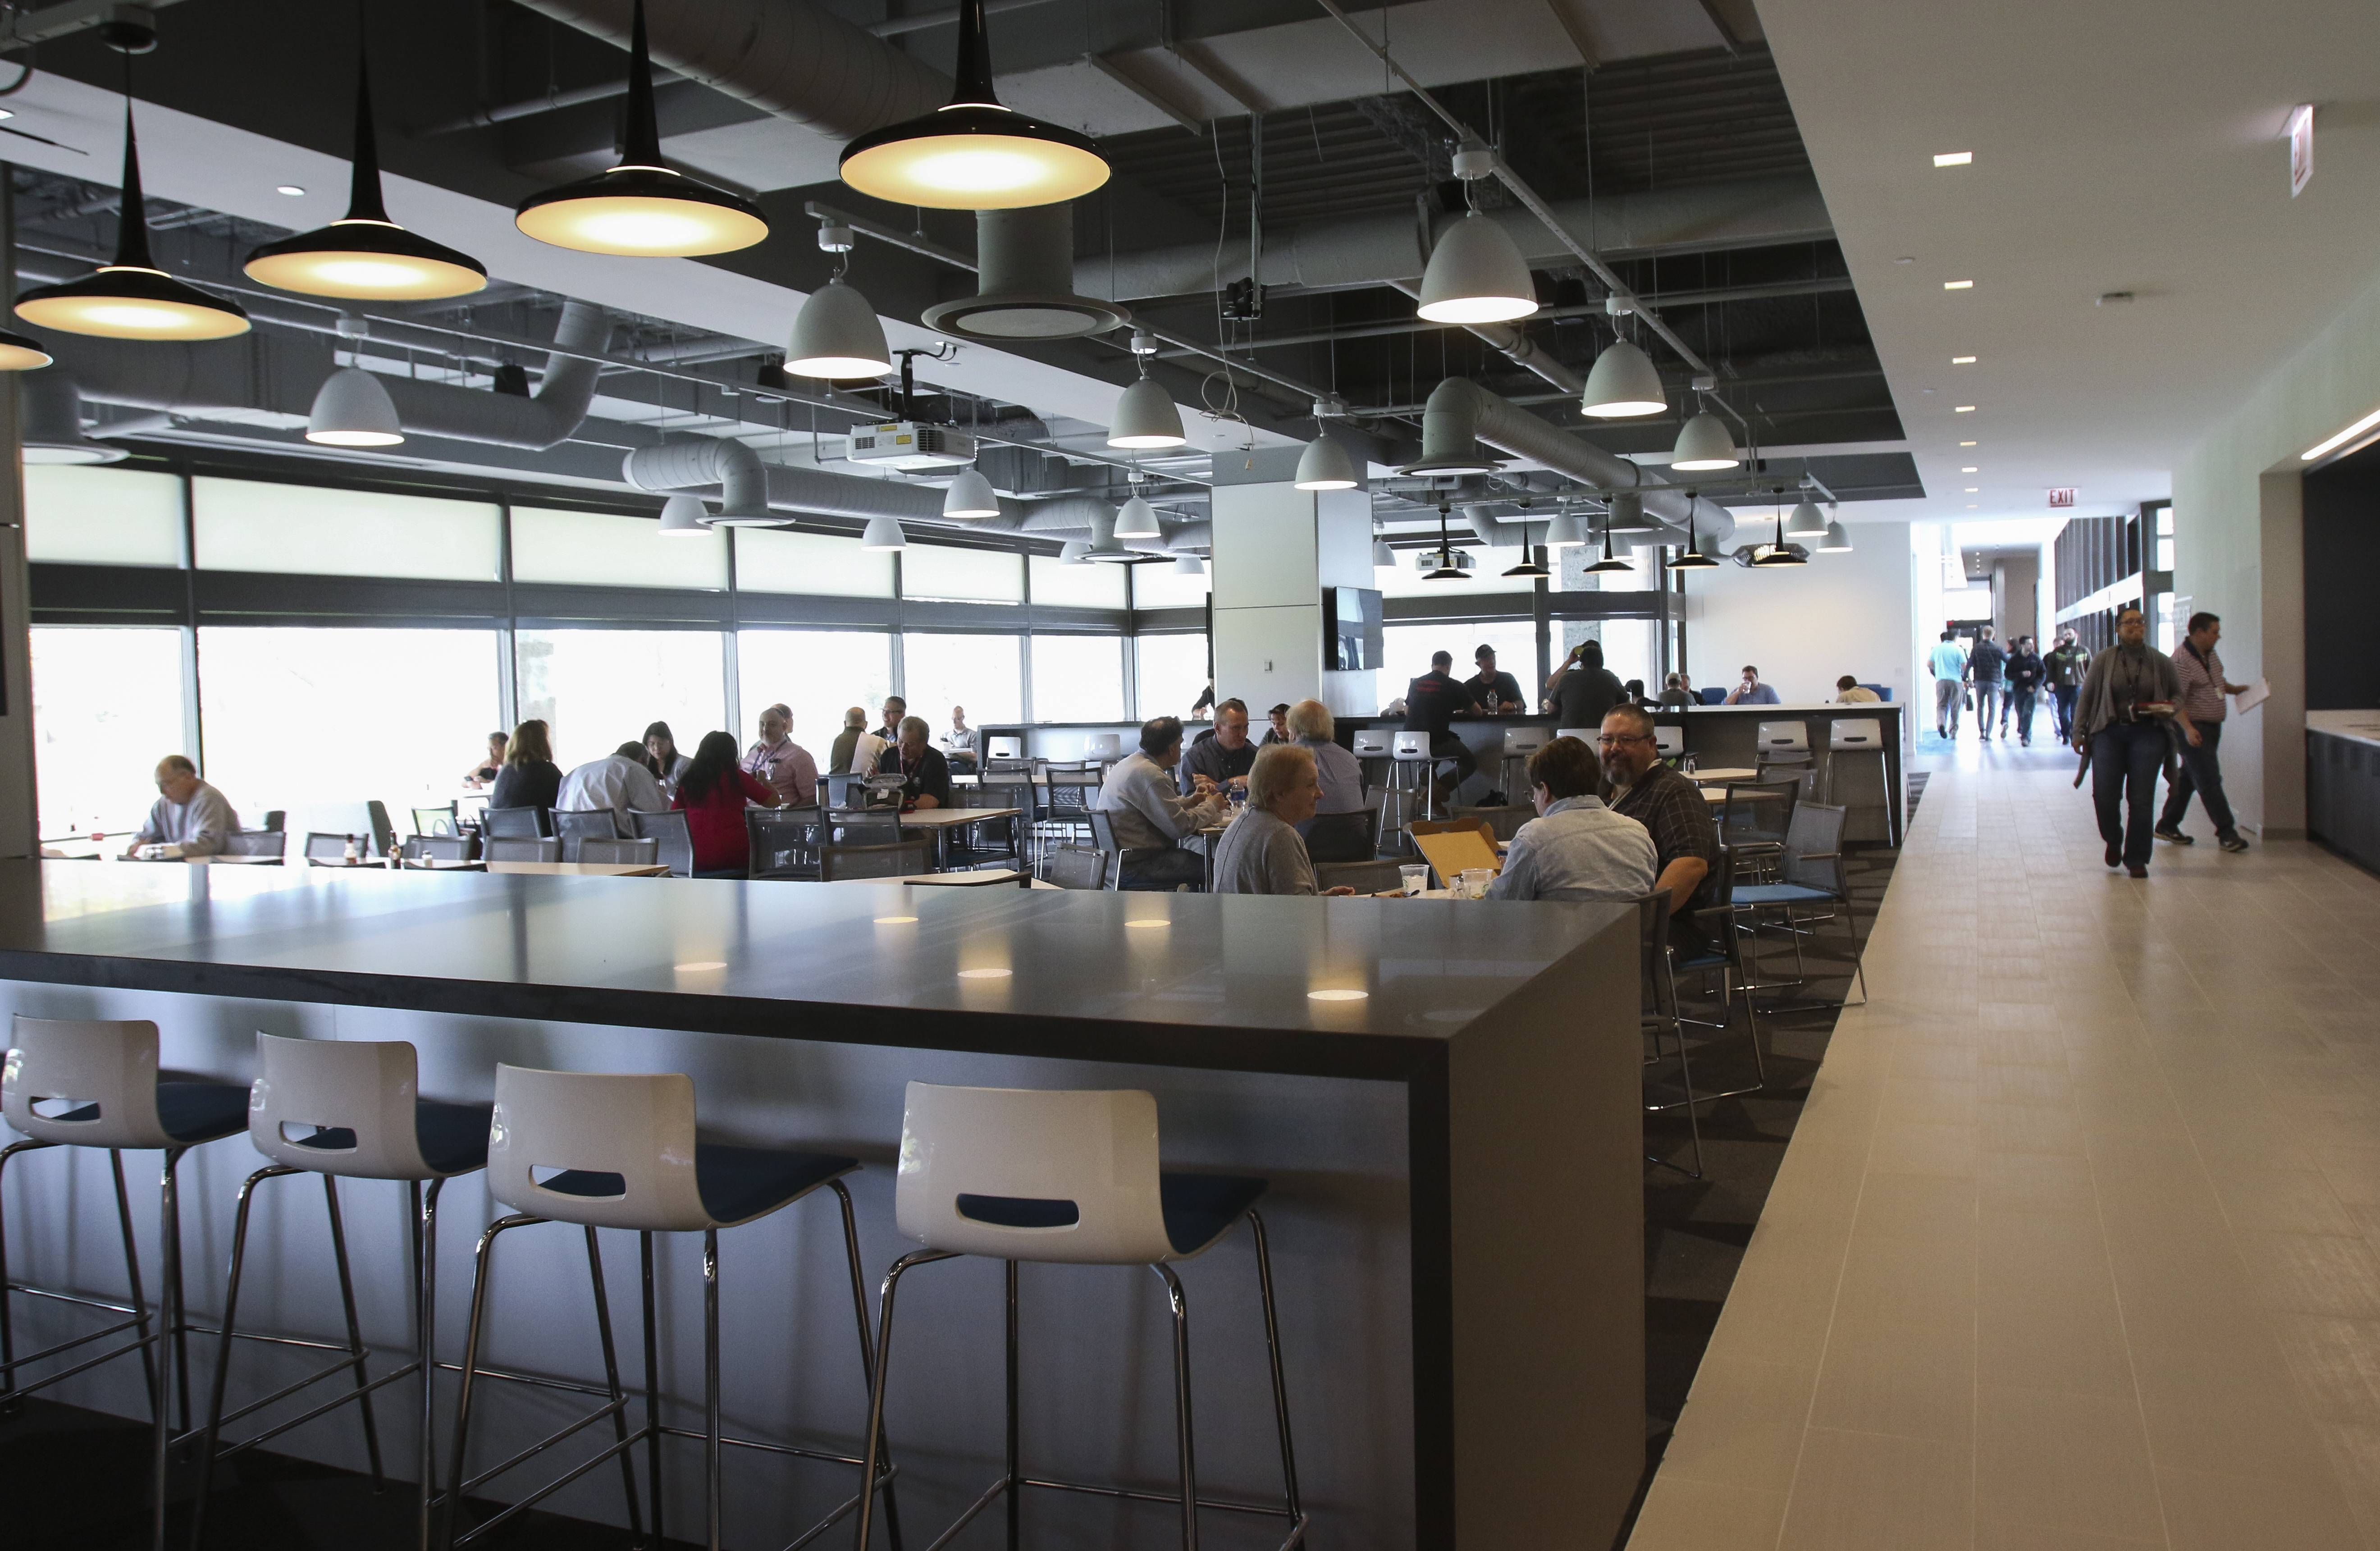 A cafeteria and place for public events is part of the renovation at Motorola Solutions in Schaumburg.